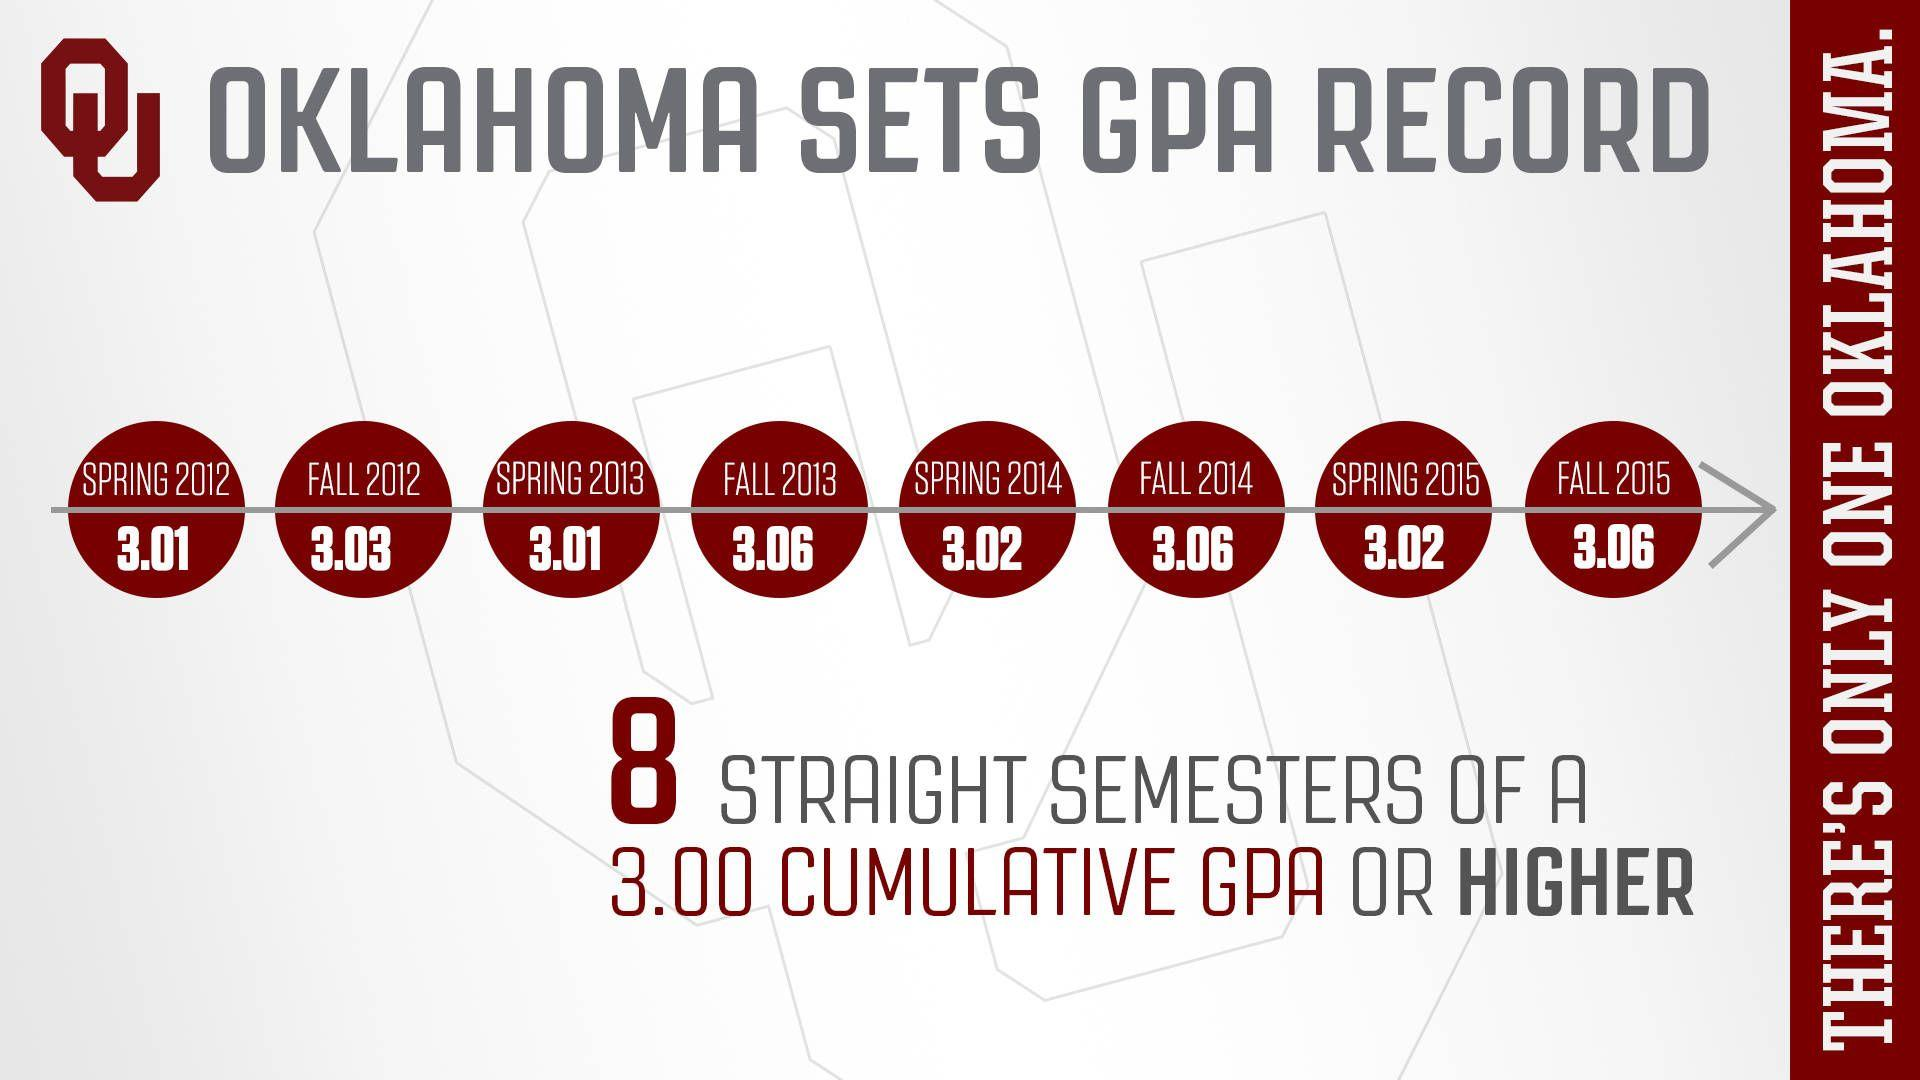 OU Athletics Sets GPA Record, Ties Another